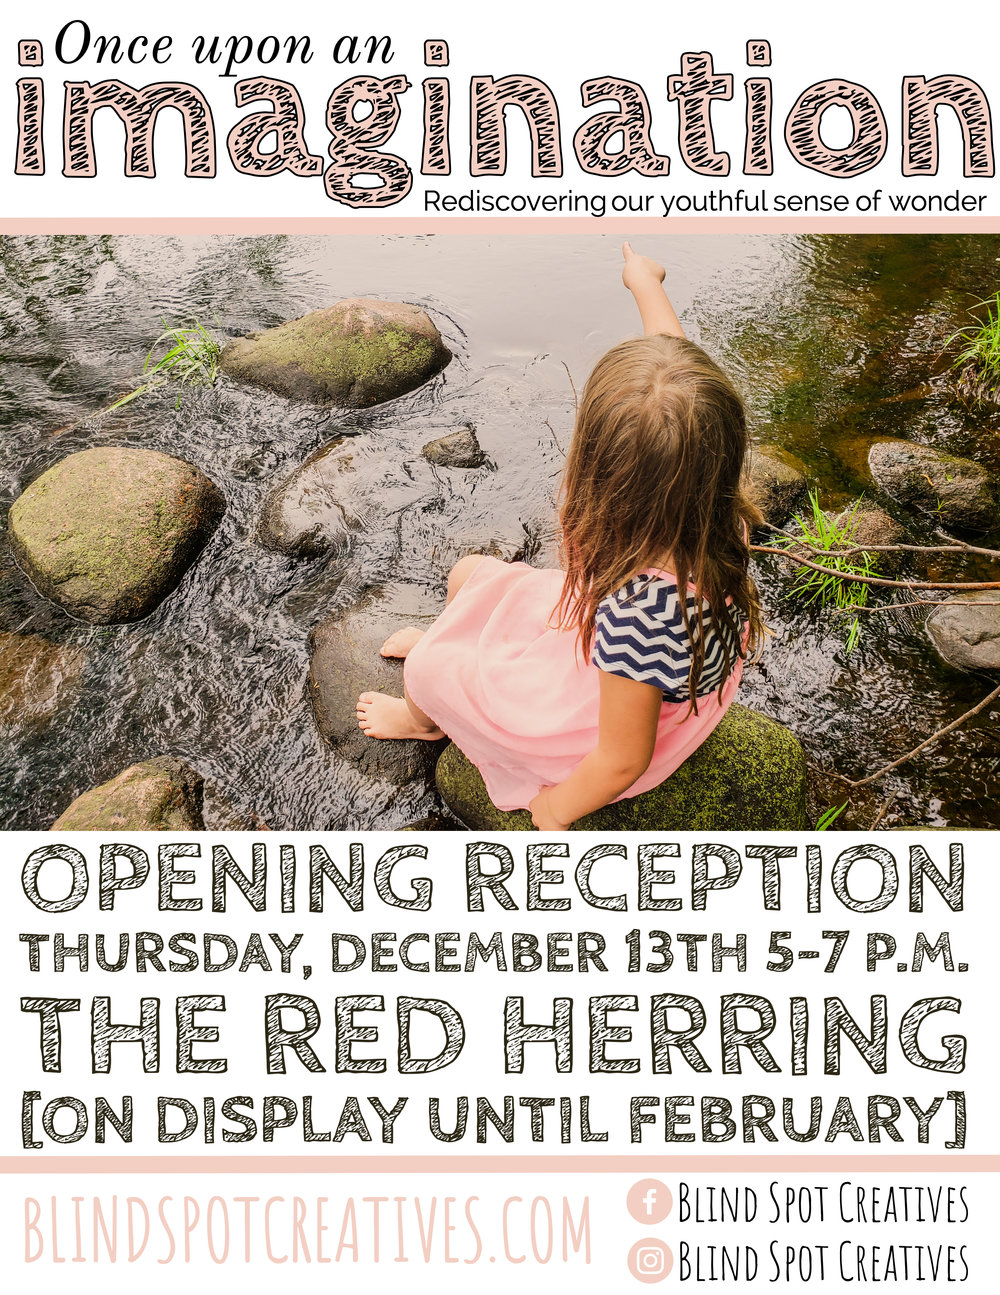 Once Upon an Imagination - Alyssa Johnson - Blind Spot Creatives - Red Herring Lounge - Opening Reception - Photography